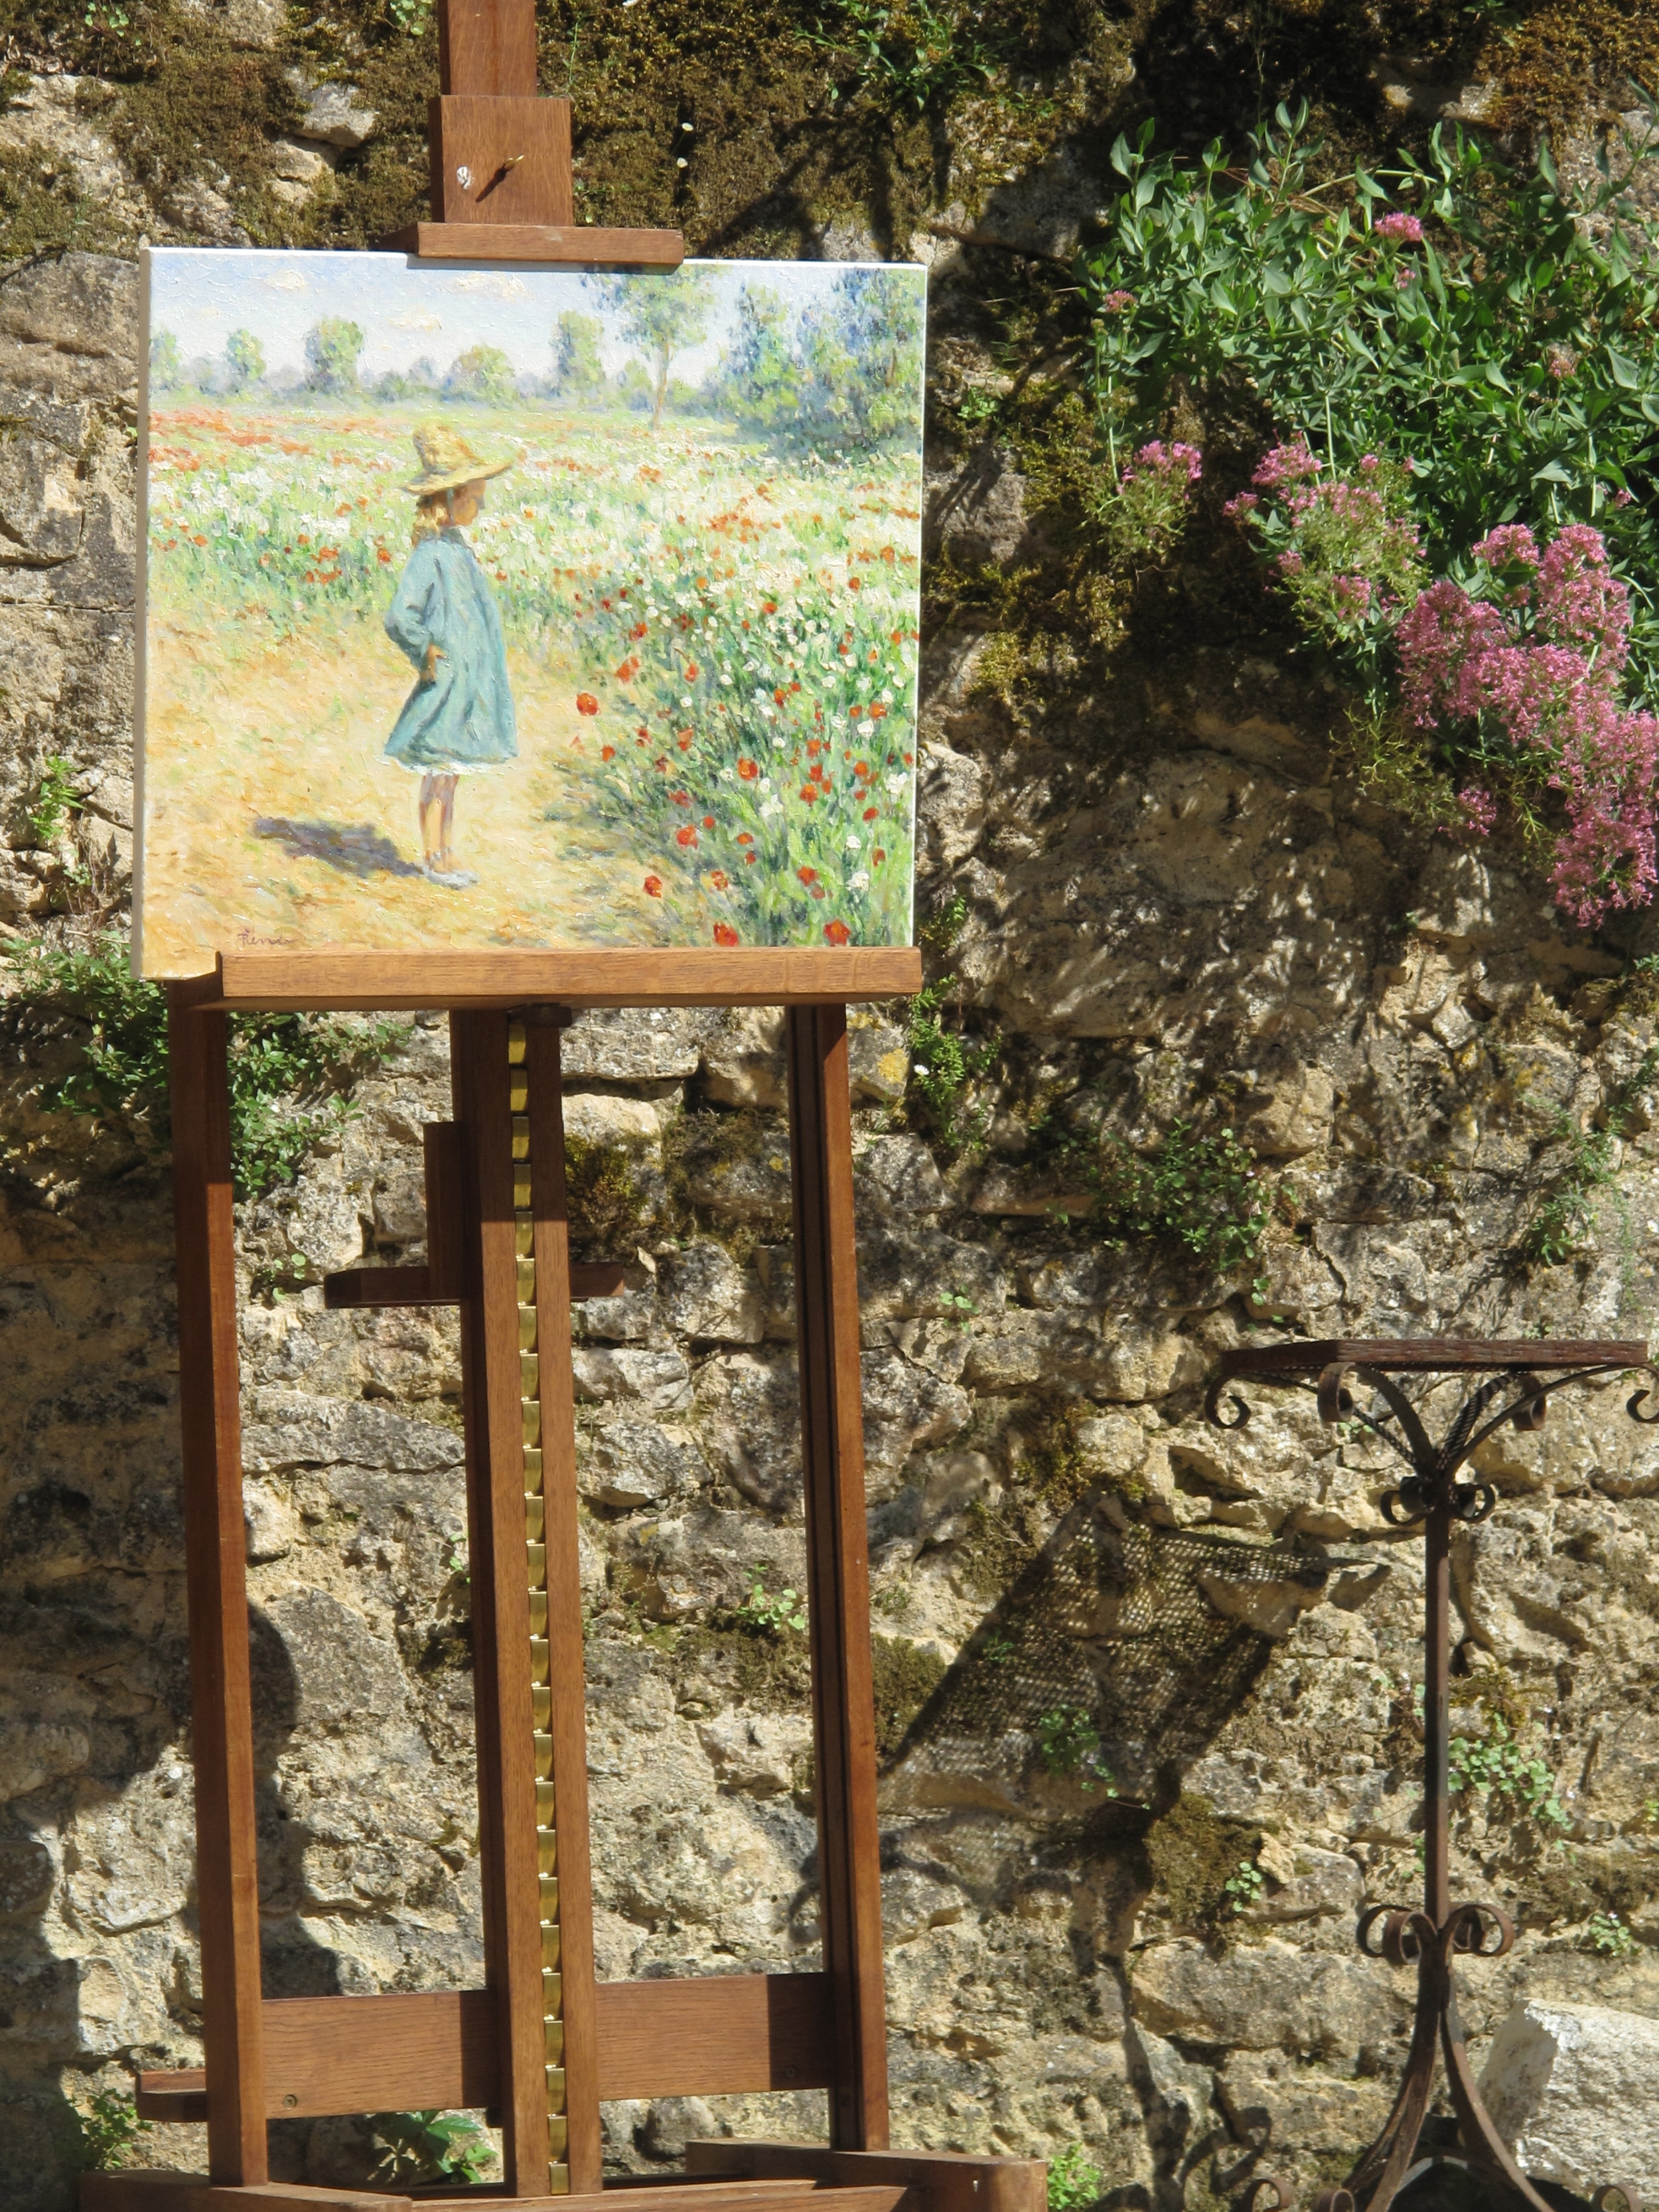 Oil painting by an artist in the Dordogne - of a girl and fields of flowers